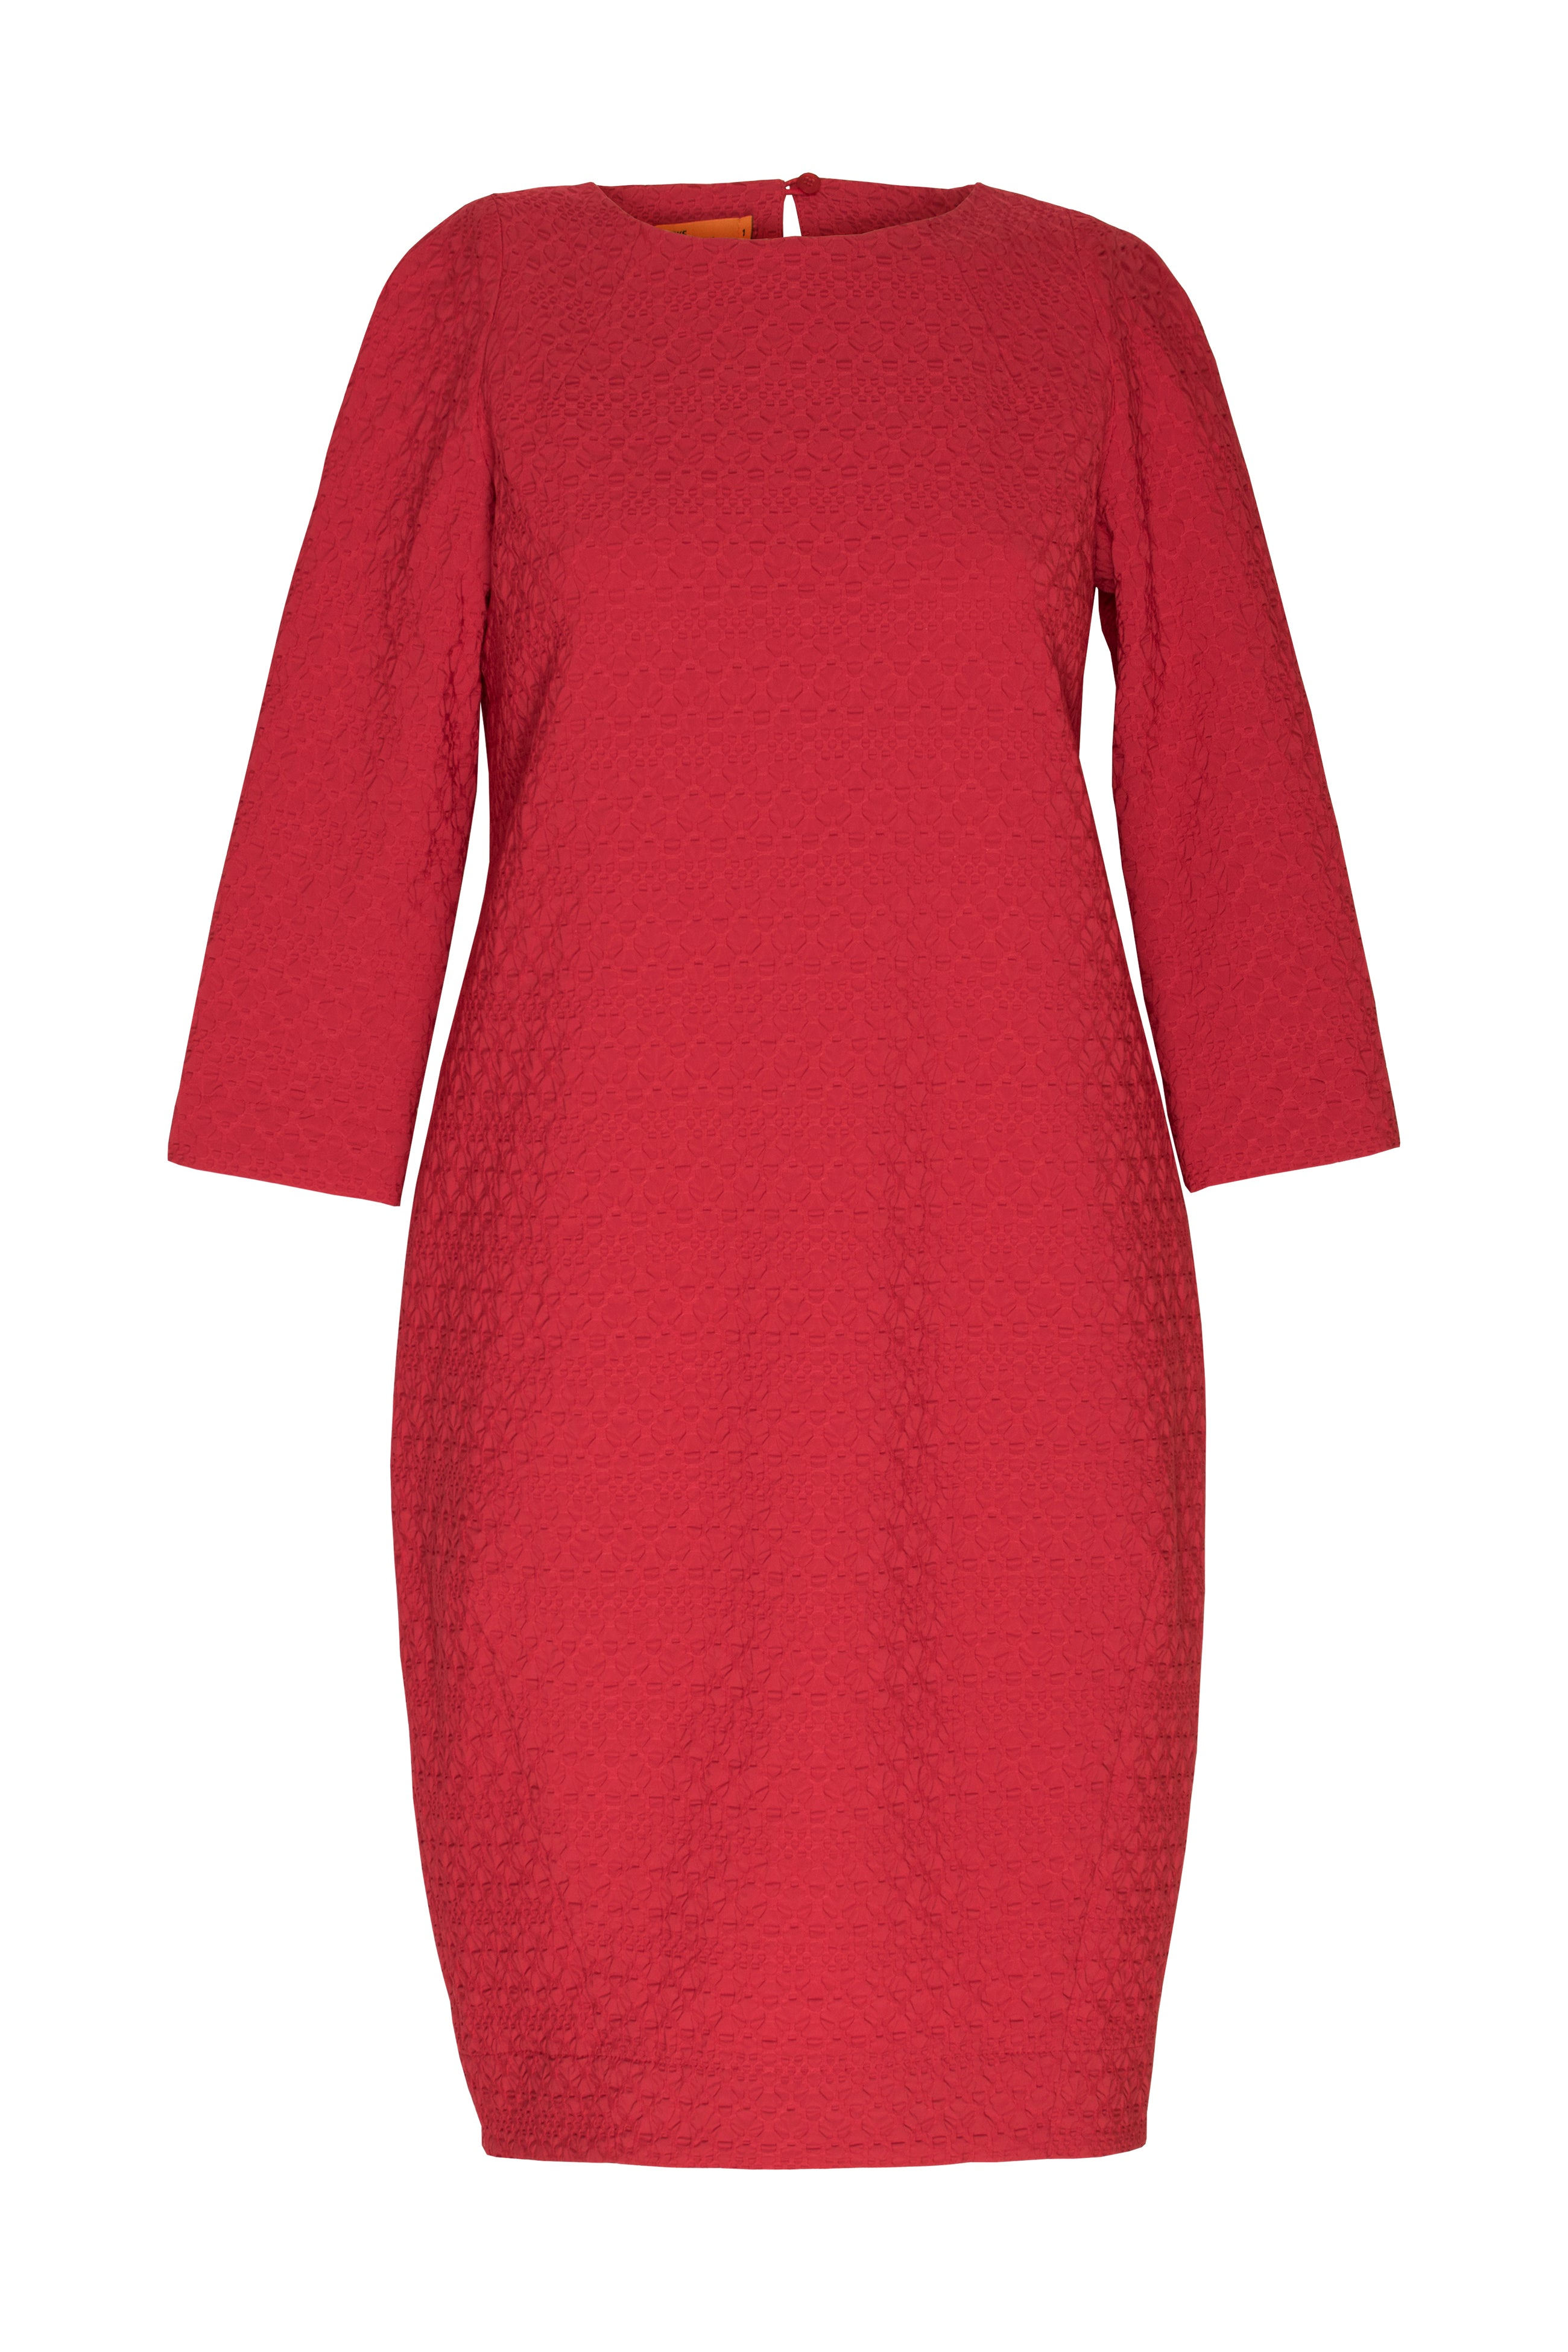 Rouge 3/4 Sleeve Tulip Dress 4253